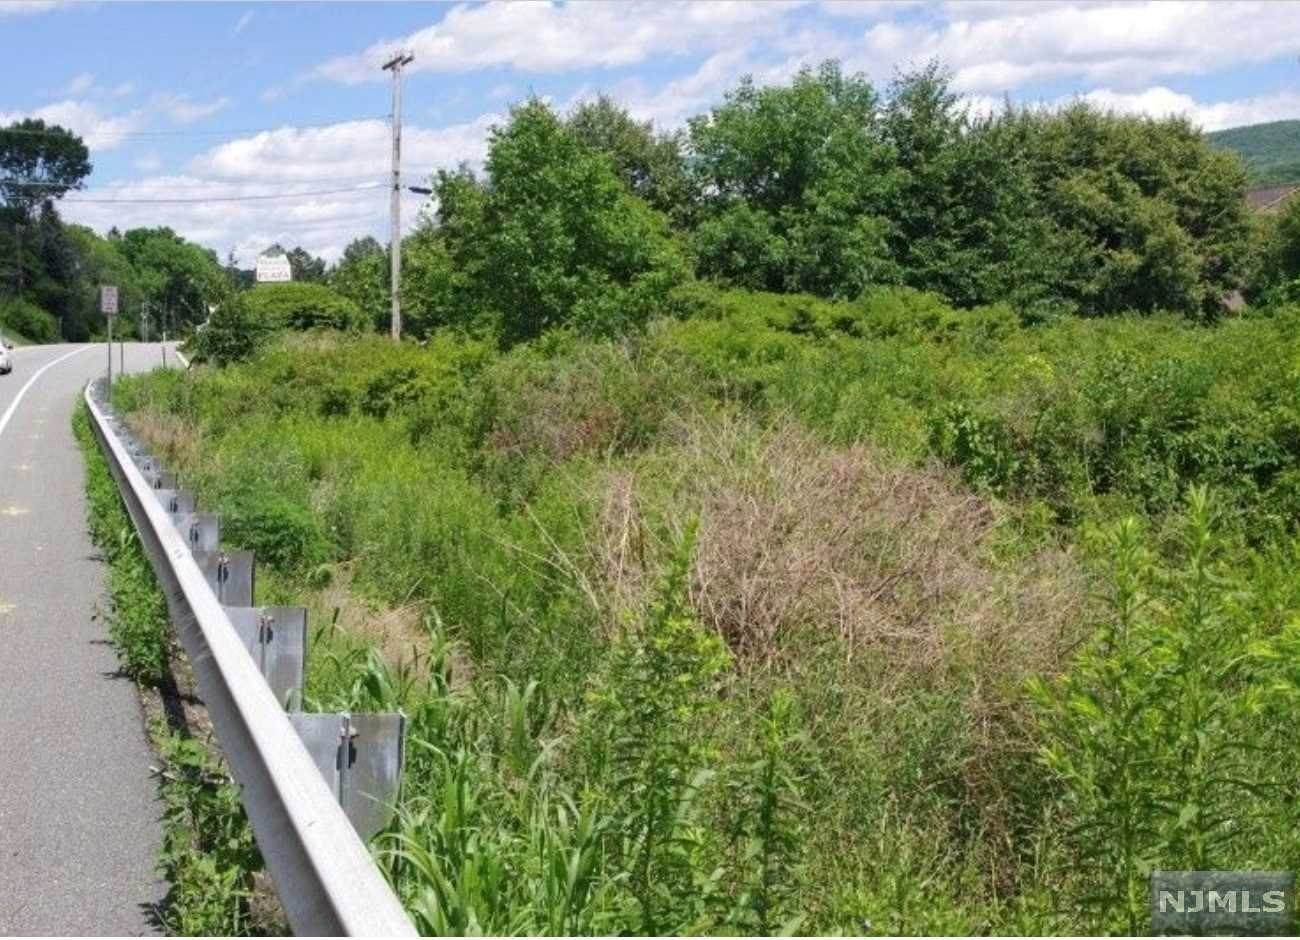 Land/Lot for Sale at 28 State Rt 94 Vernon, New Jersey,07462 United States